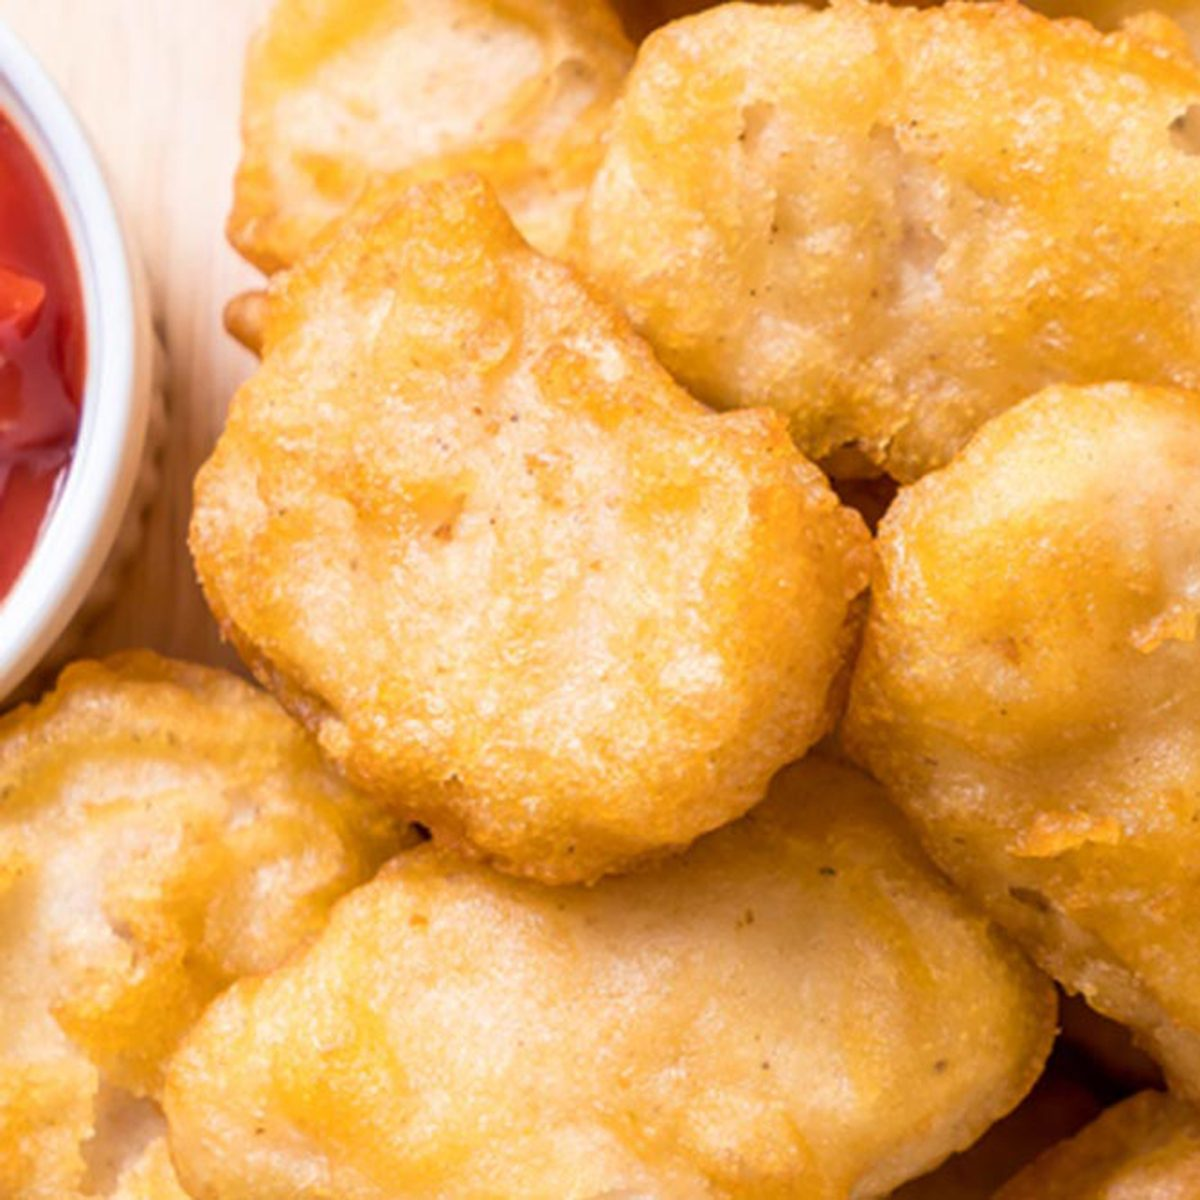 chicken mcnuggets close-up